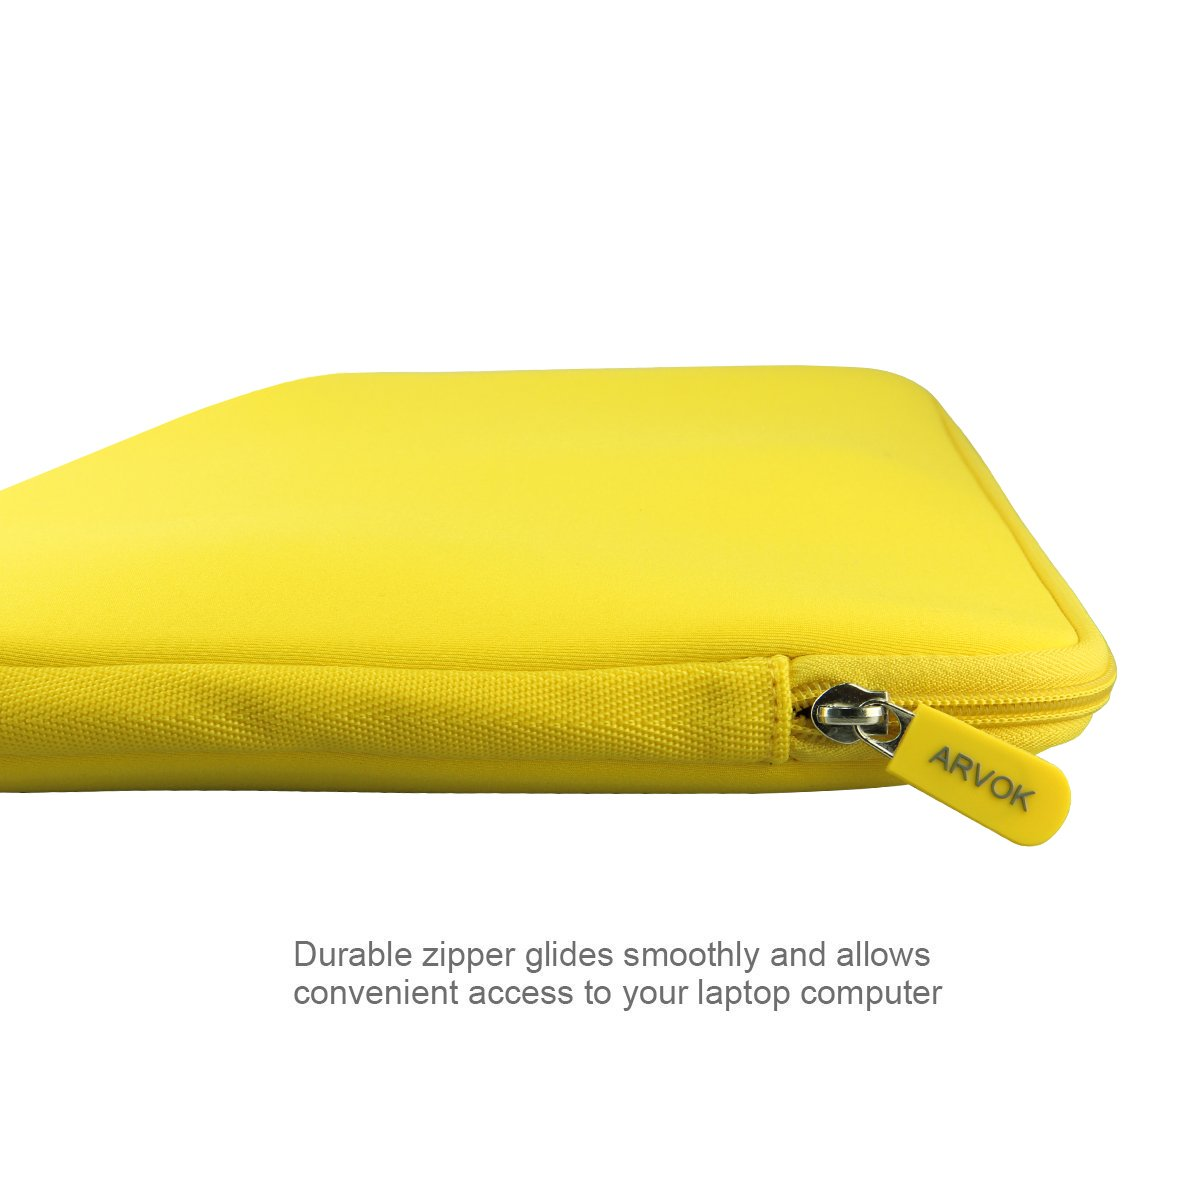 Arvok 15-15.6 Inch Laptop Sleeve Multi-Color /& Size Choices Case//Water-resistant Neoprene Notebook Computer Pocket Tablet Briefcase Carrying Bag//Pouch Skin Cover Yellow with Flower